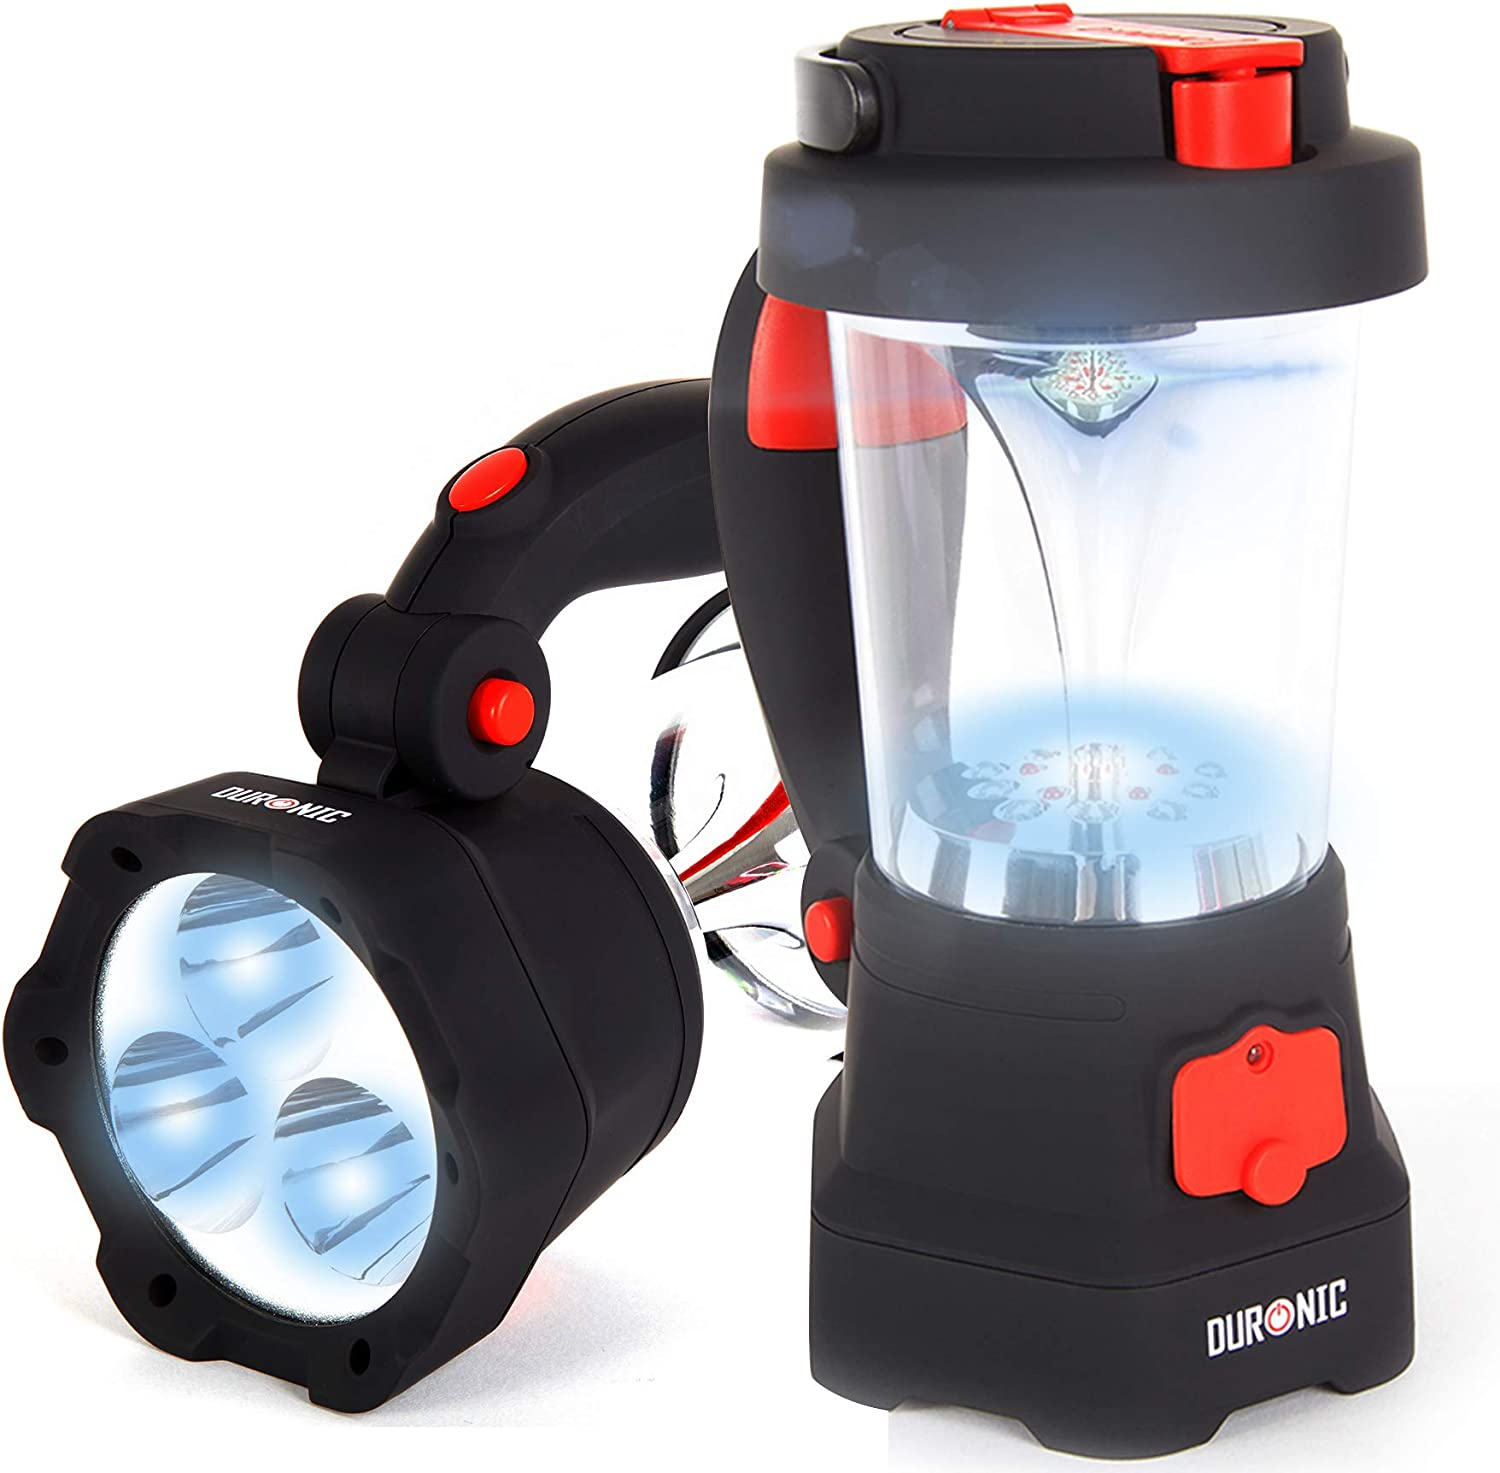 Duronic Hurricane 4 in 1 Rechargeable WindUp Dynamo Flashing Red LED, 10 LED Lantern & 3 LED Torch  USB Charging Function + 2 Year Warranty